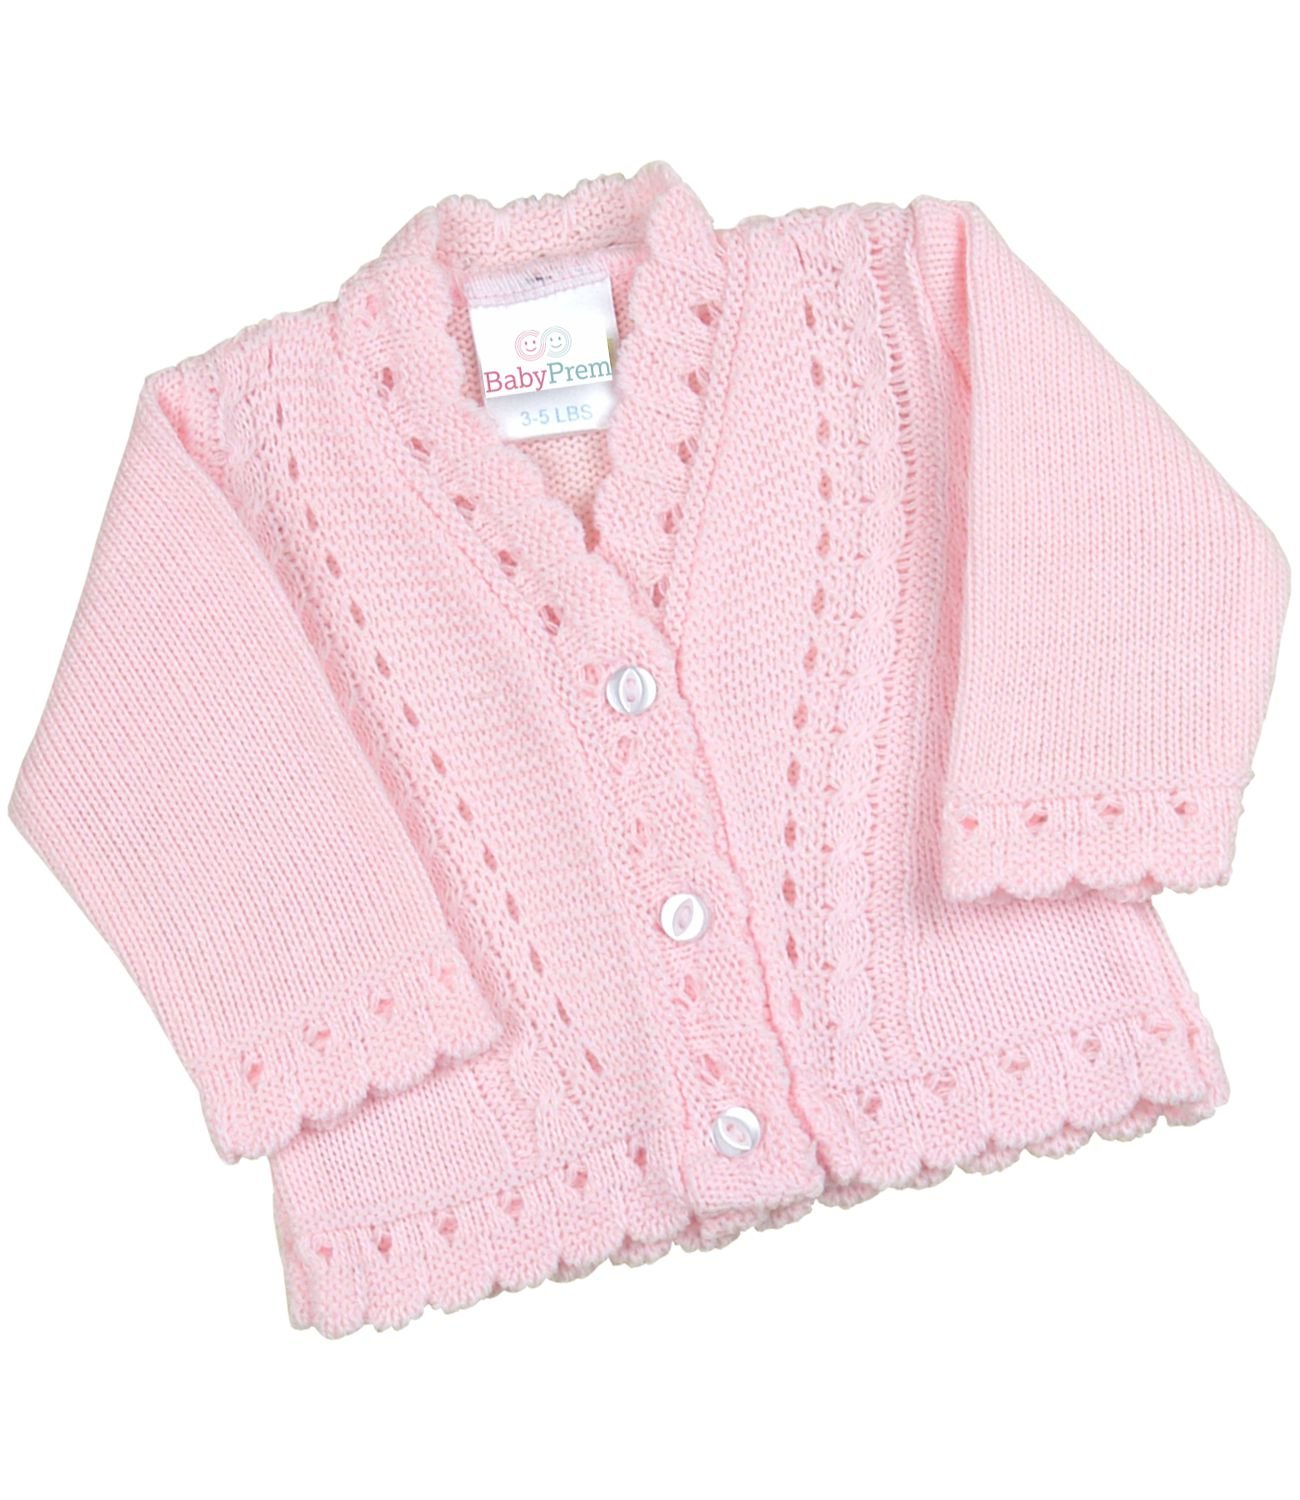 BabyPrem Premature Baby Cardigan Jacket Boy Girl Buttons Soft Knitted 3-8lb BEE027